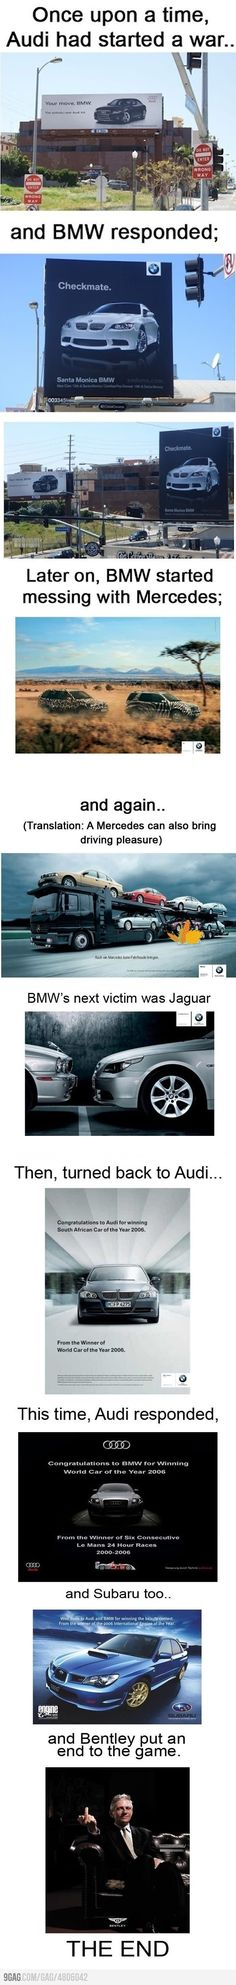 Funny pictures about Audi Ad War. Oh, and cool pics about Audi Ad War. Also, Audi Ad War photos. Car Jokes, Funny Car Memes, Car Humor, Advertising History, Car Advertising, Advertising Campaign, The Meta Picture, Subaru Legacy, Best Funny Pictures